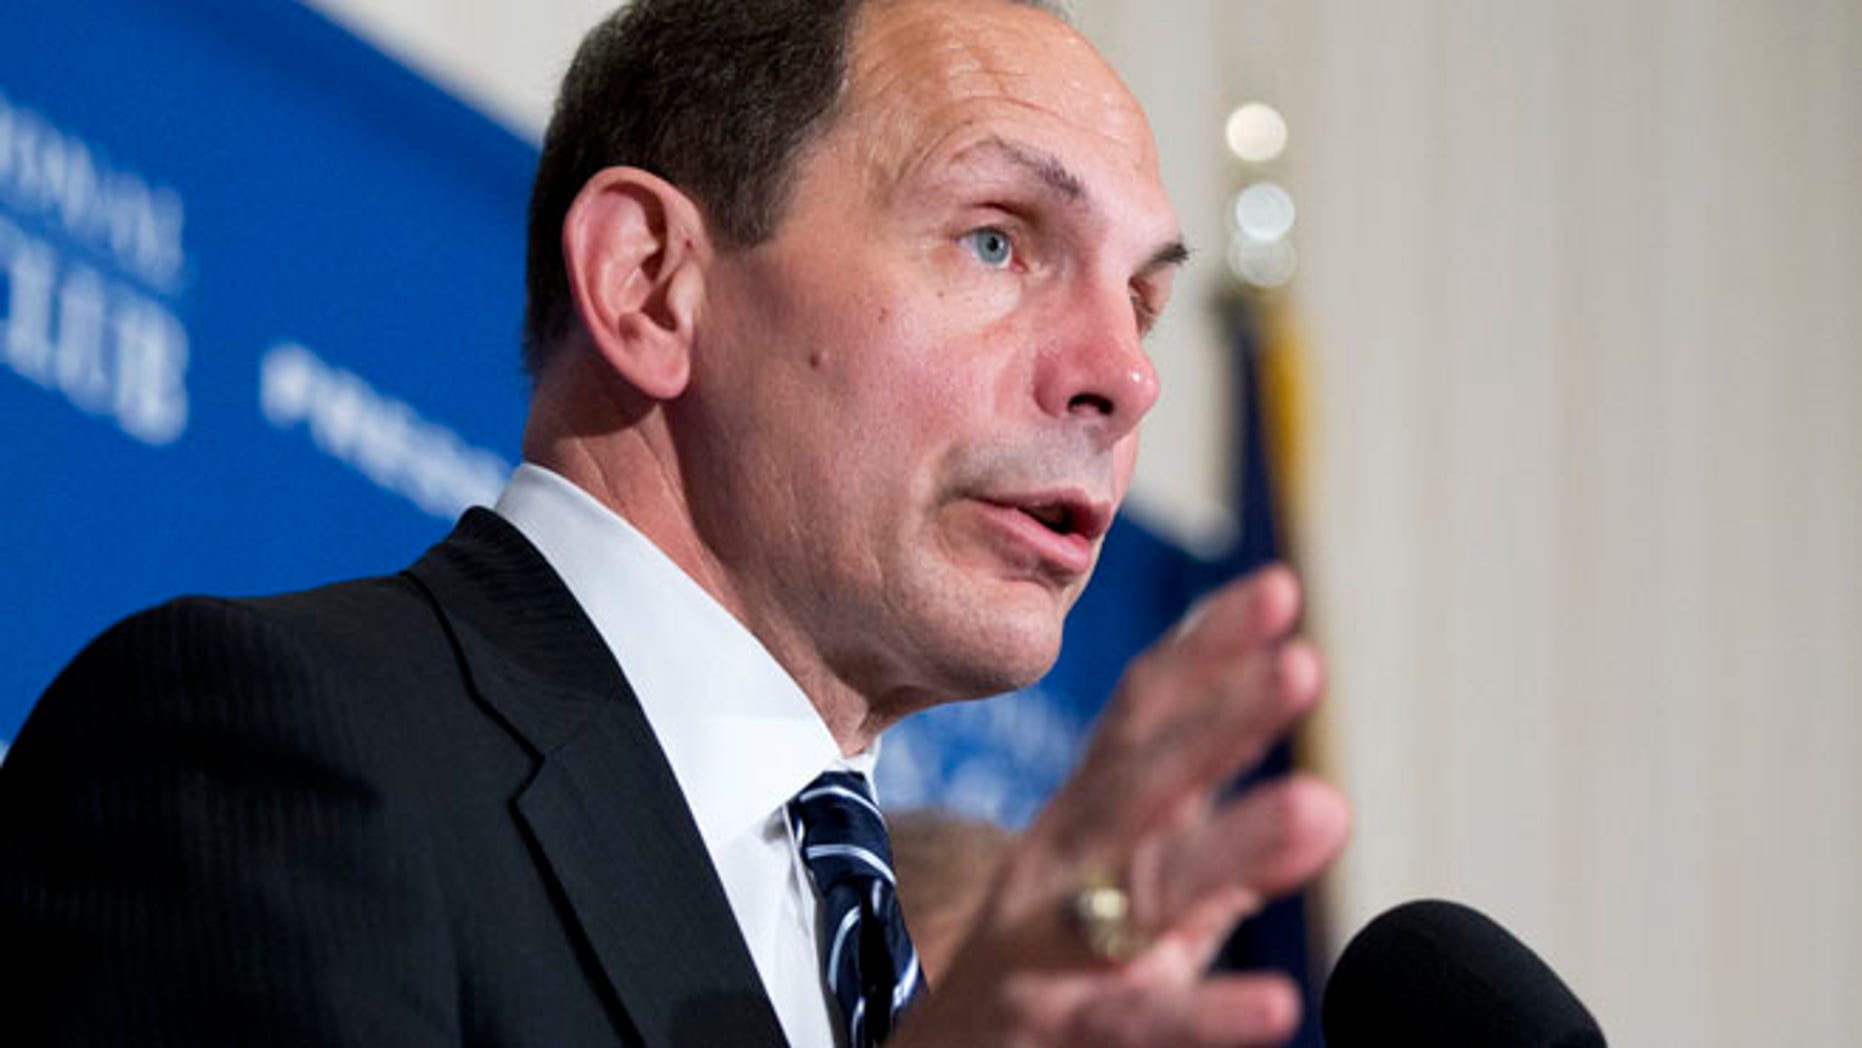 Nov. 7, 2014: Veterans Affairs Secretary Robert McDonald speaks about his efforts to improve services for veterans during a news conference at the National Press Club in Washington. (AP)